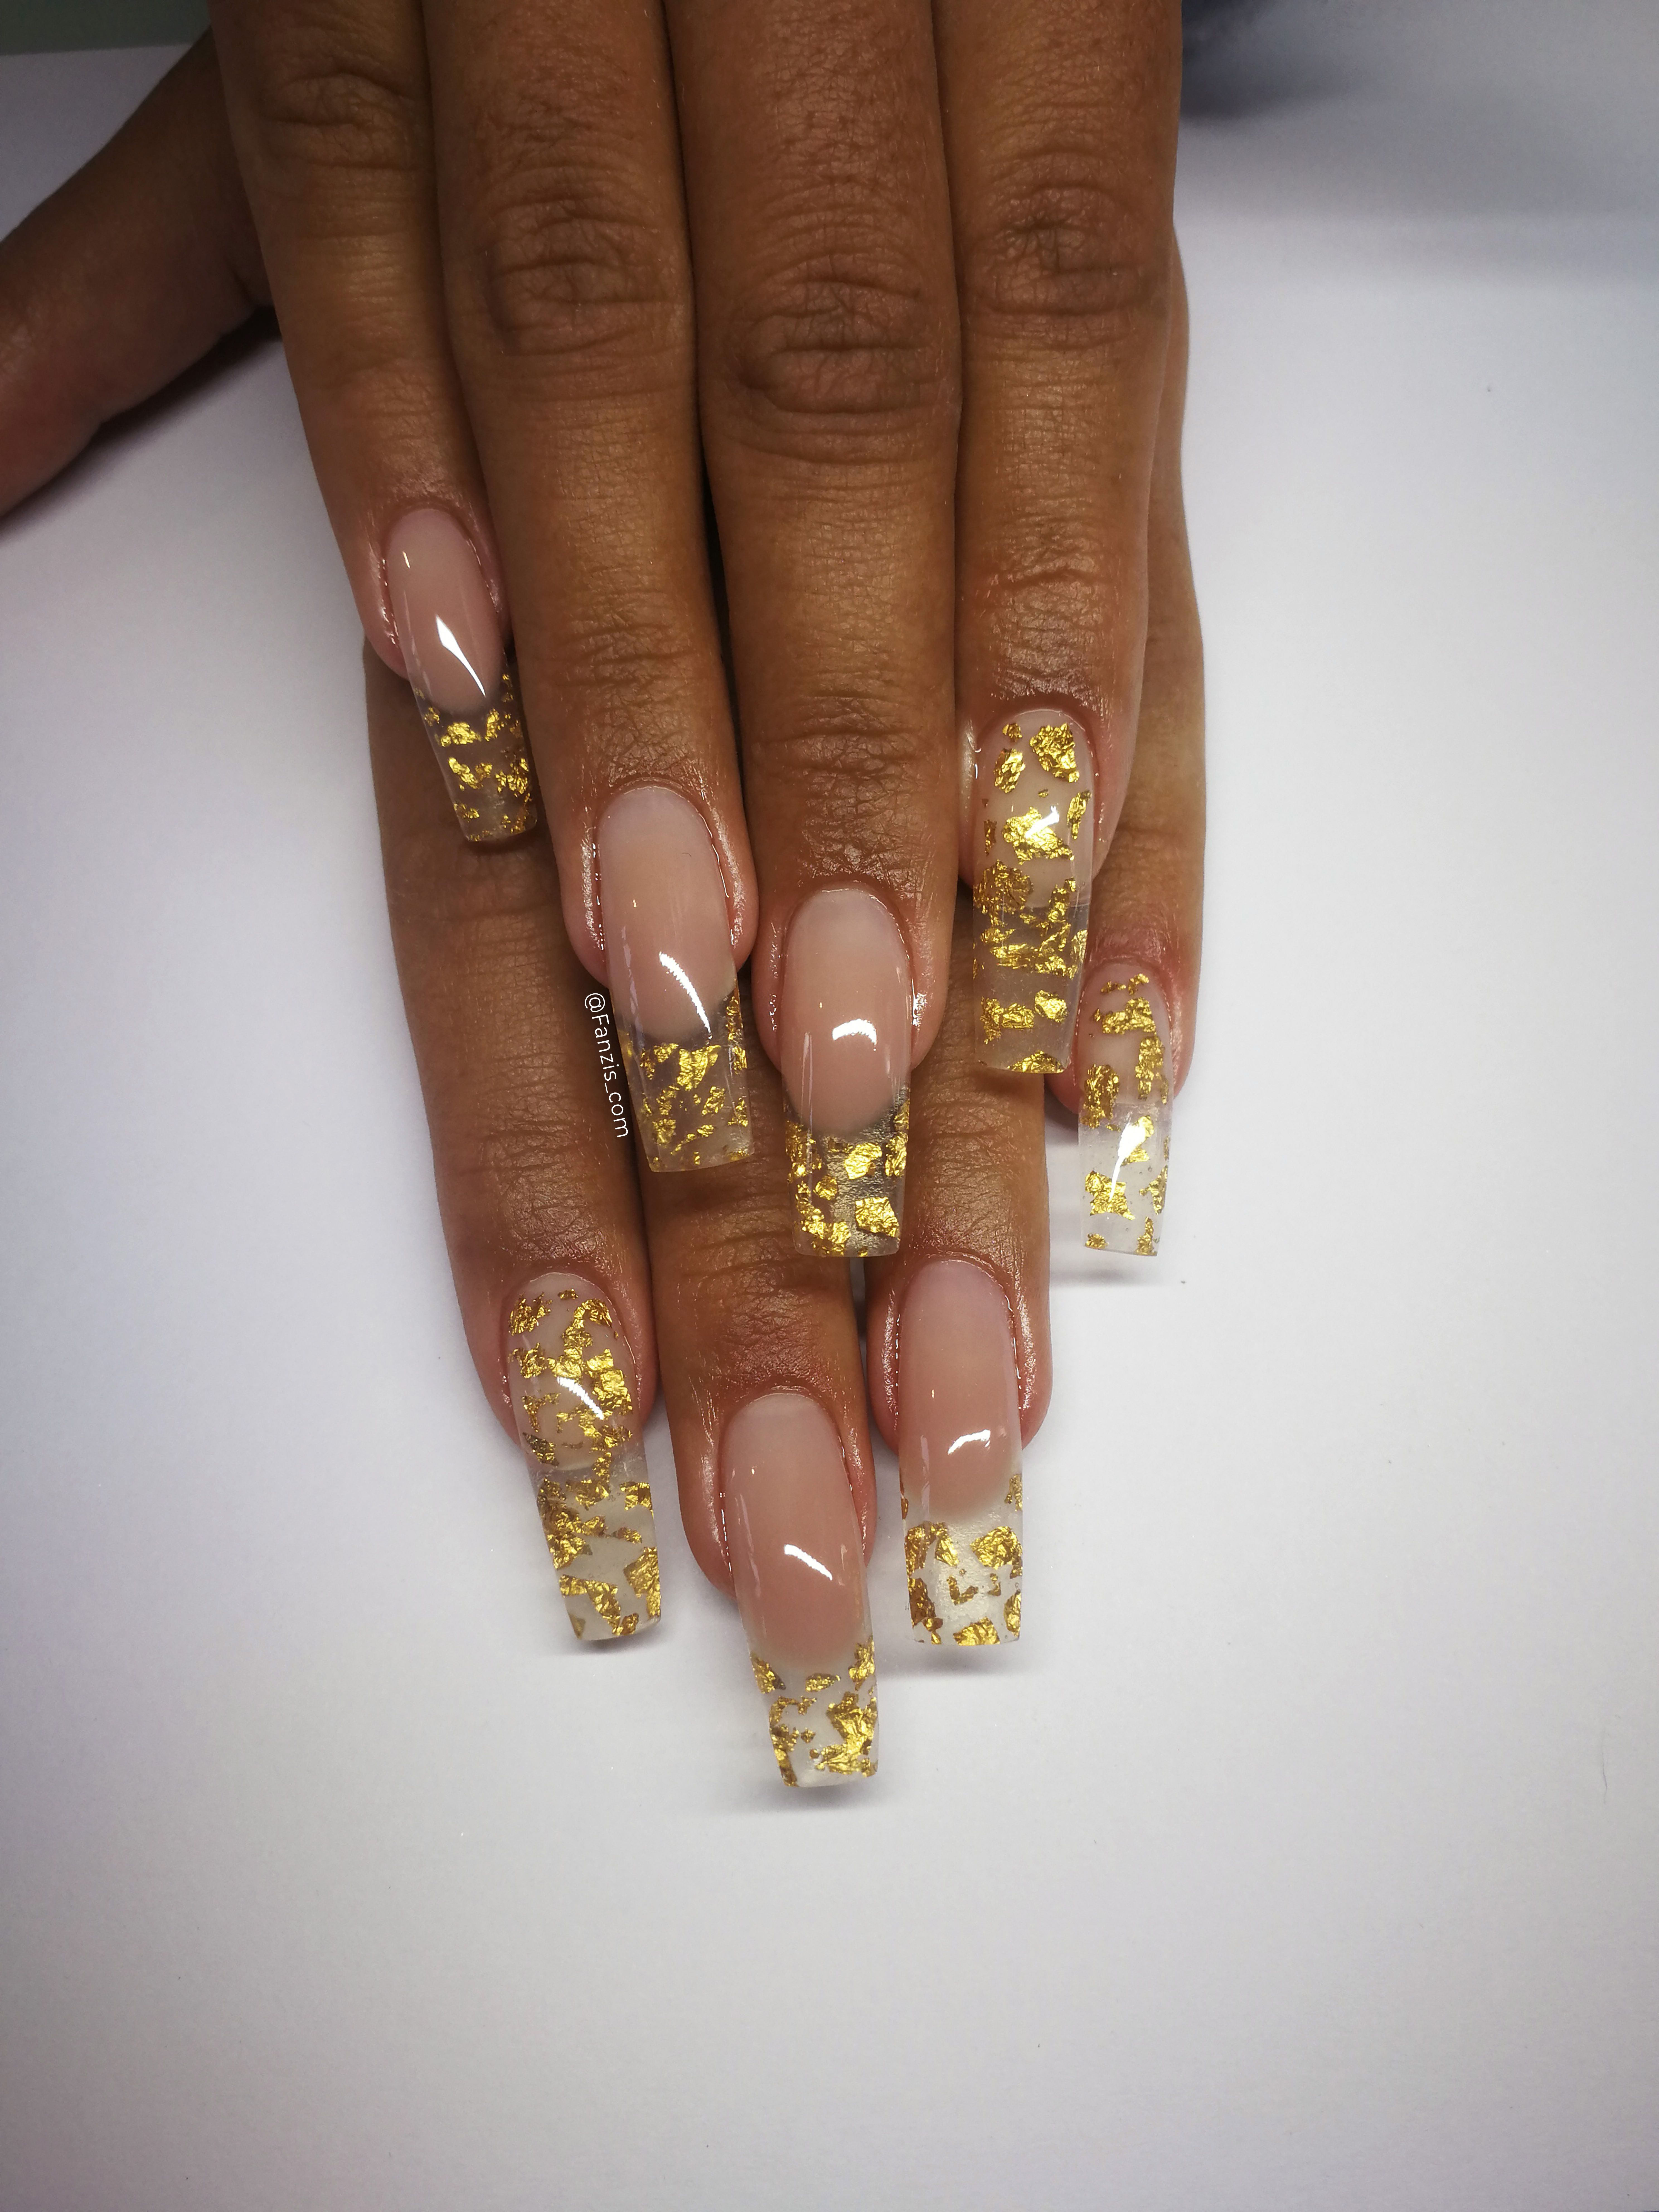 Glas French Square Gel Nails With Gold Foil Details Gold Nails Square Gel Nails Drip Nails